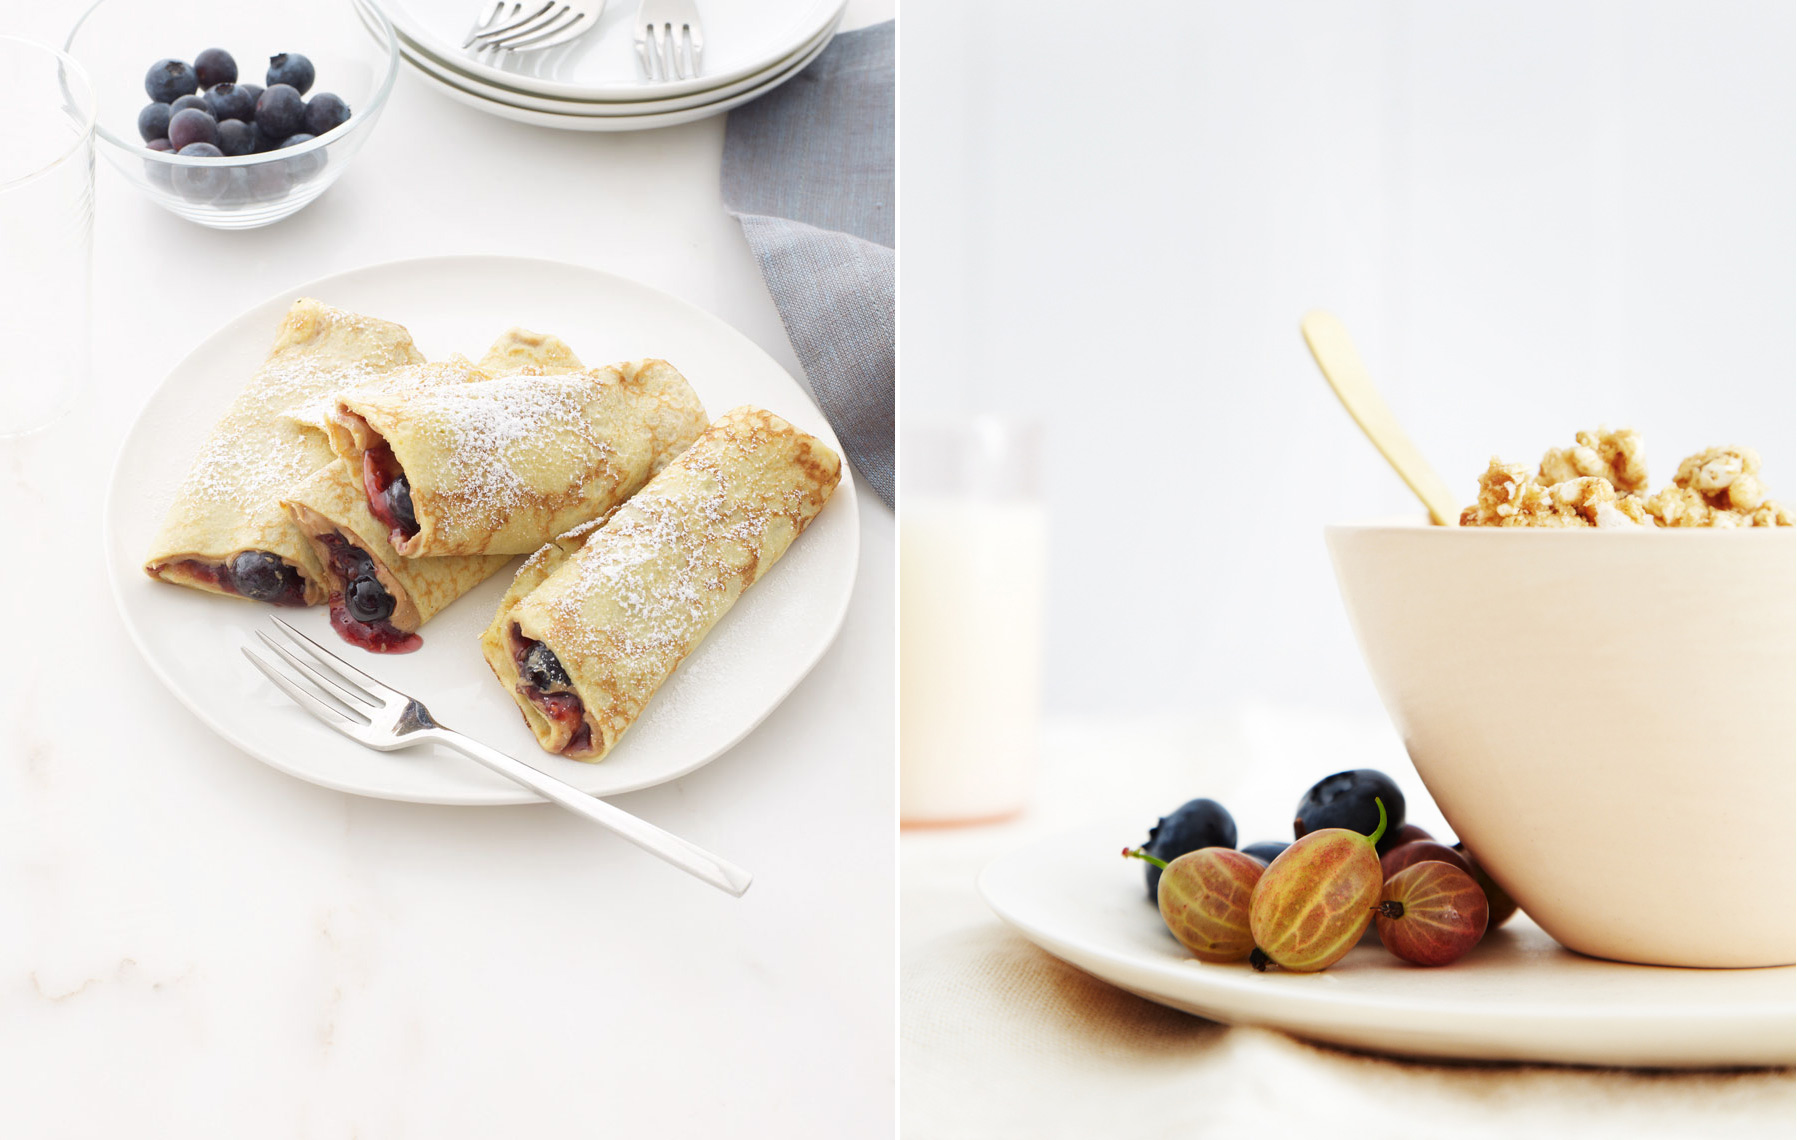 CREPES-AND-GOOSEBERRIES.jpg